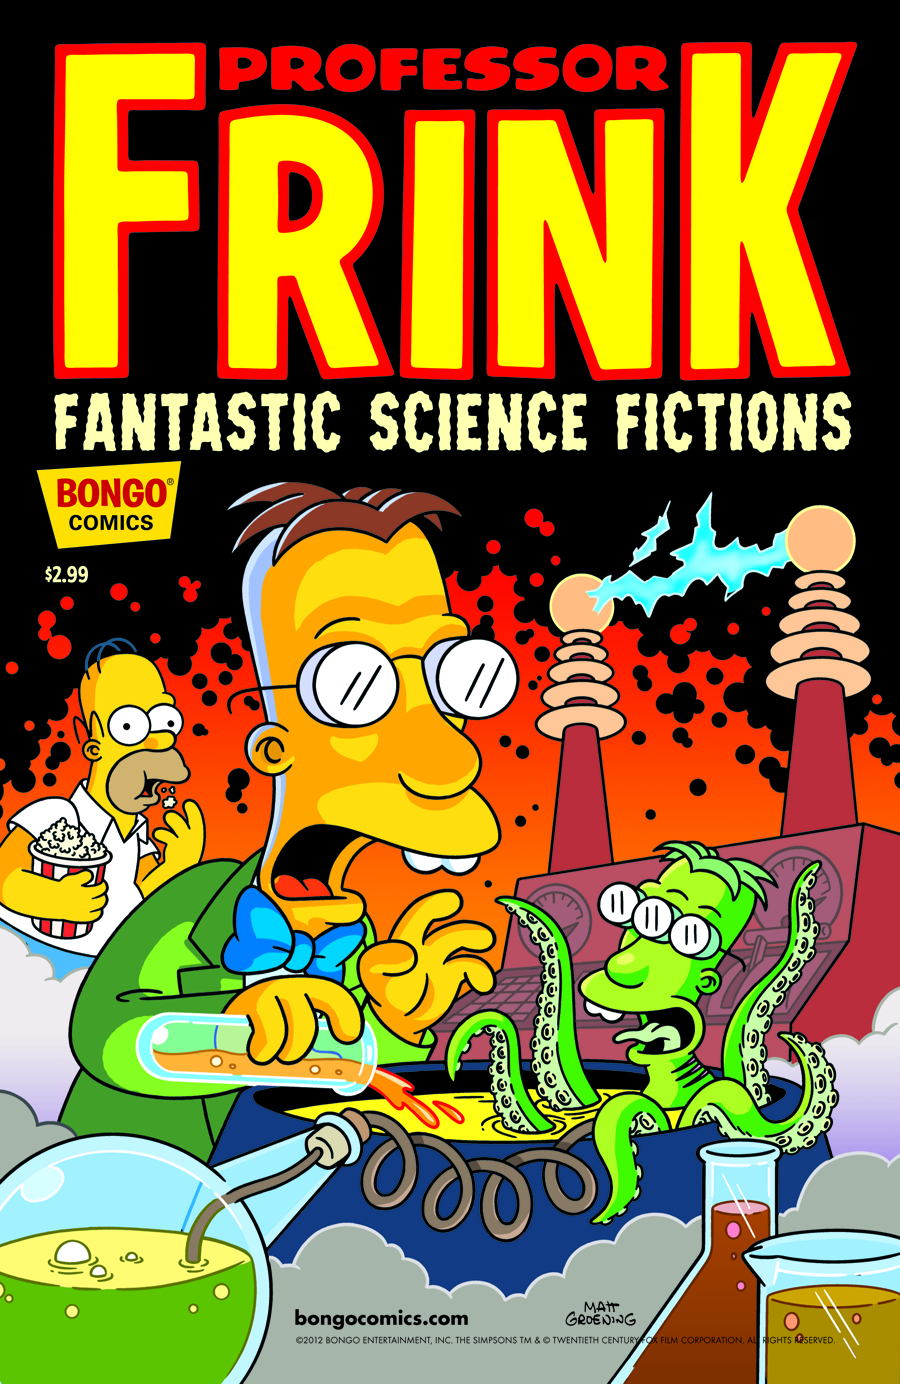 PROFESSOR FRINK FANTASTIC SCIENCE FICTIONS #1